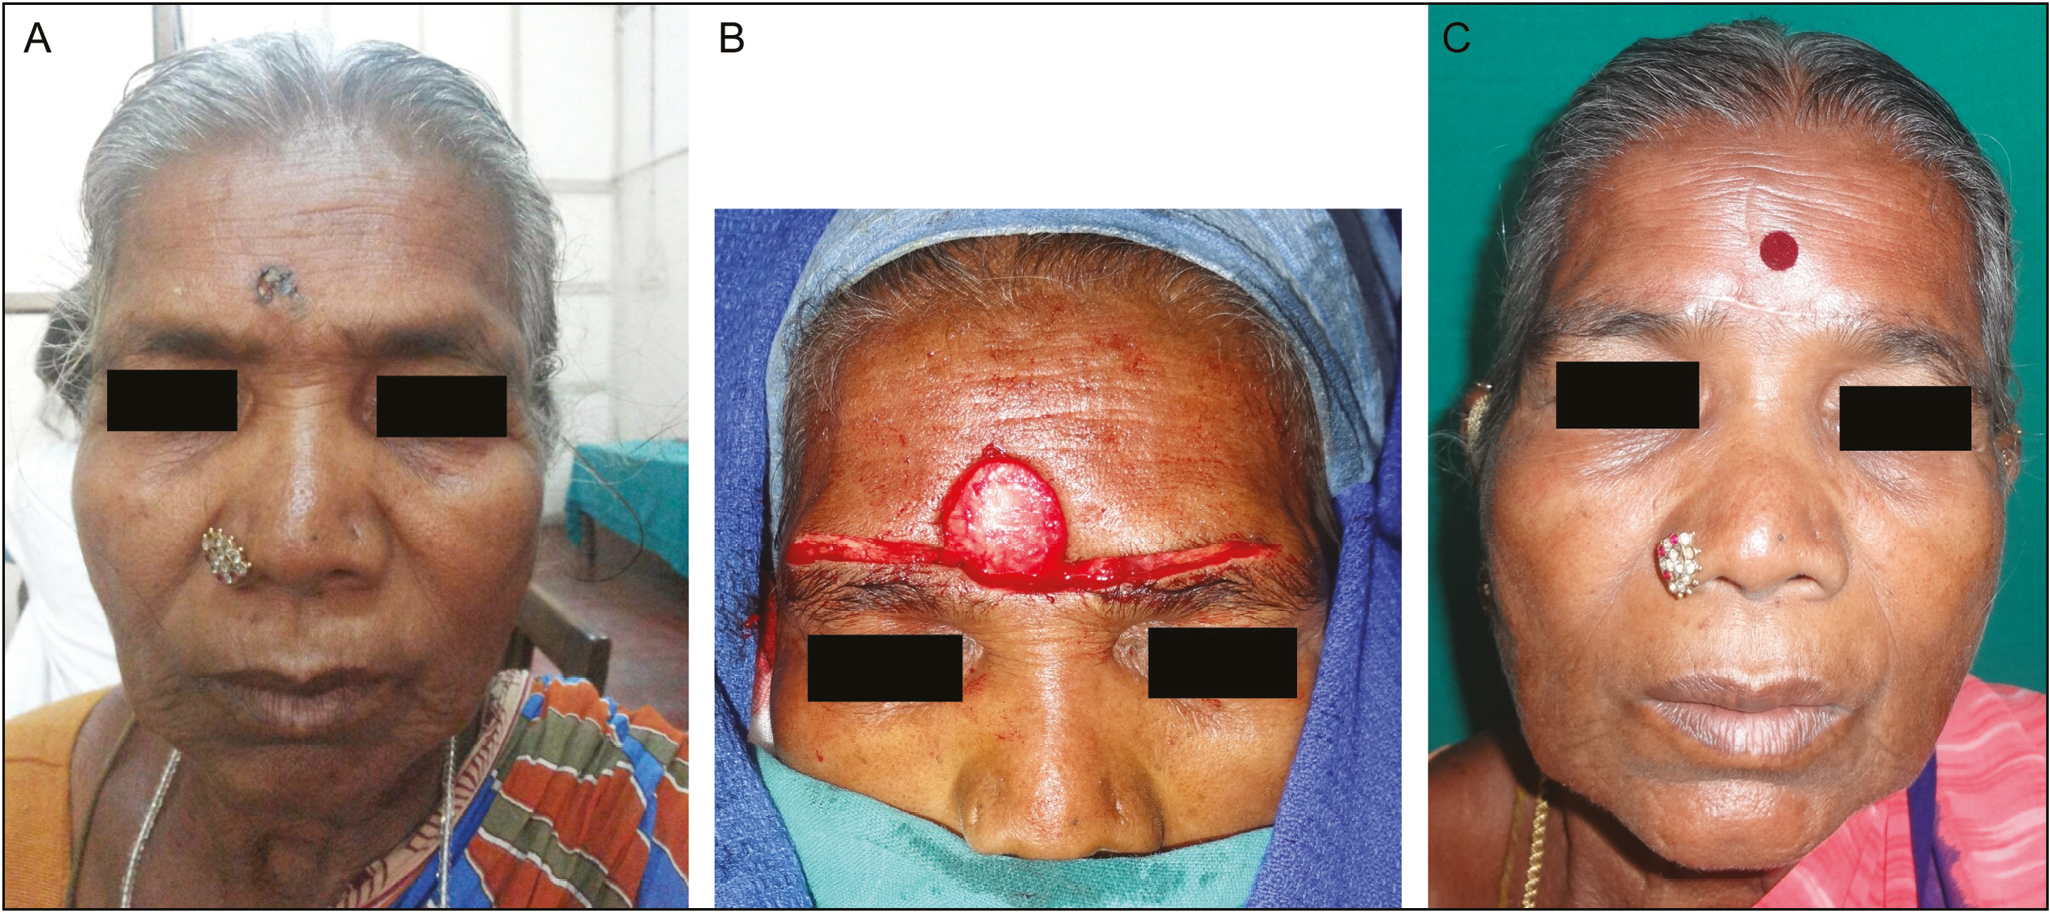 Figure 10: (A) BCC of forehead. (B) Post-excision defect over forehead and elevation of advancement flaps. (C) Bilateral advancement flap late postoperative status